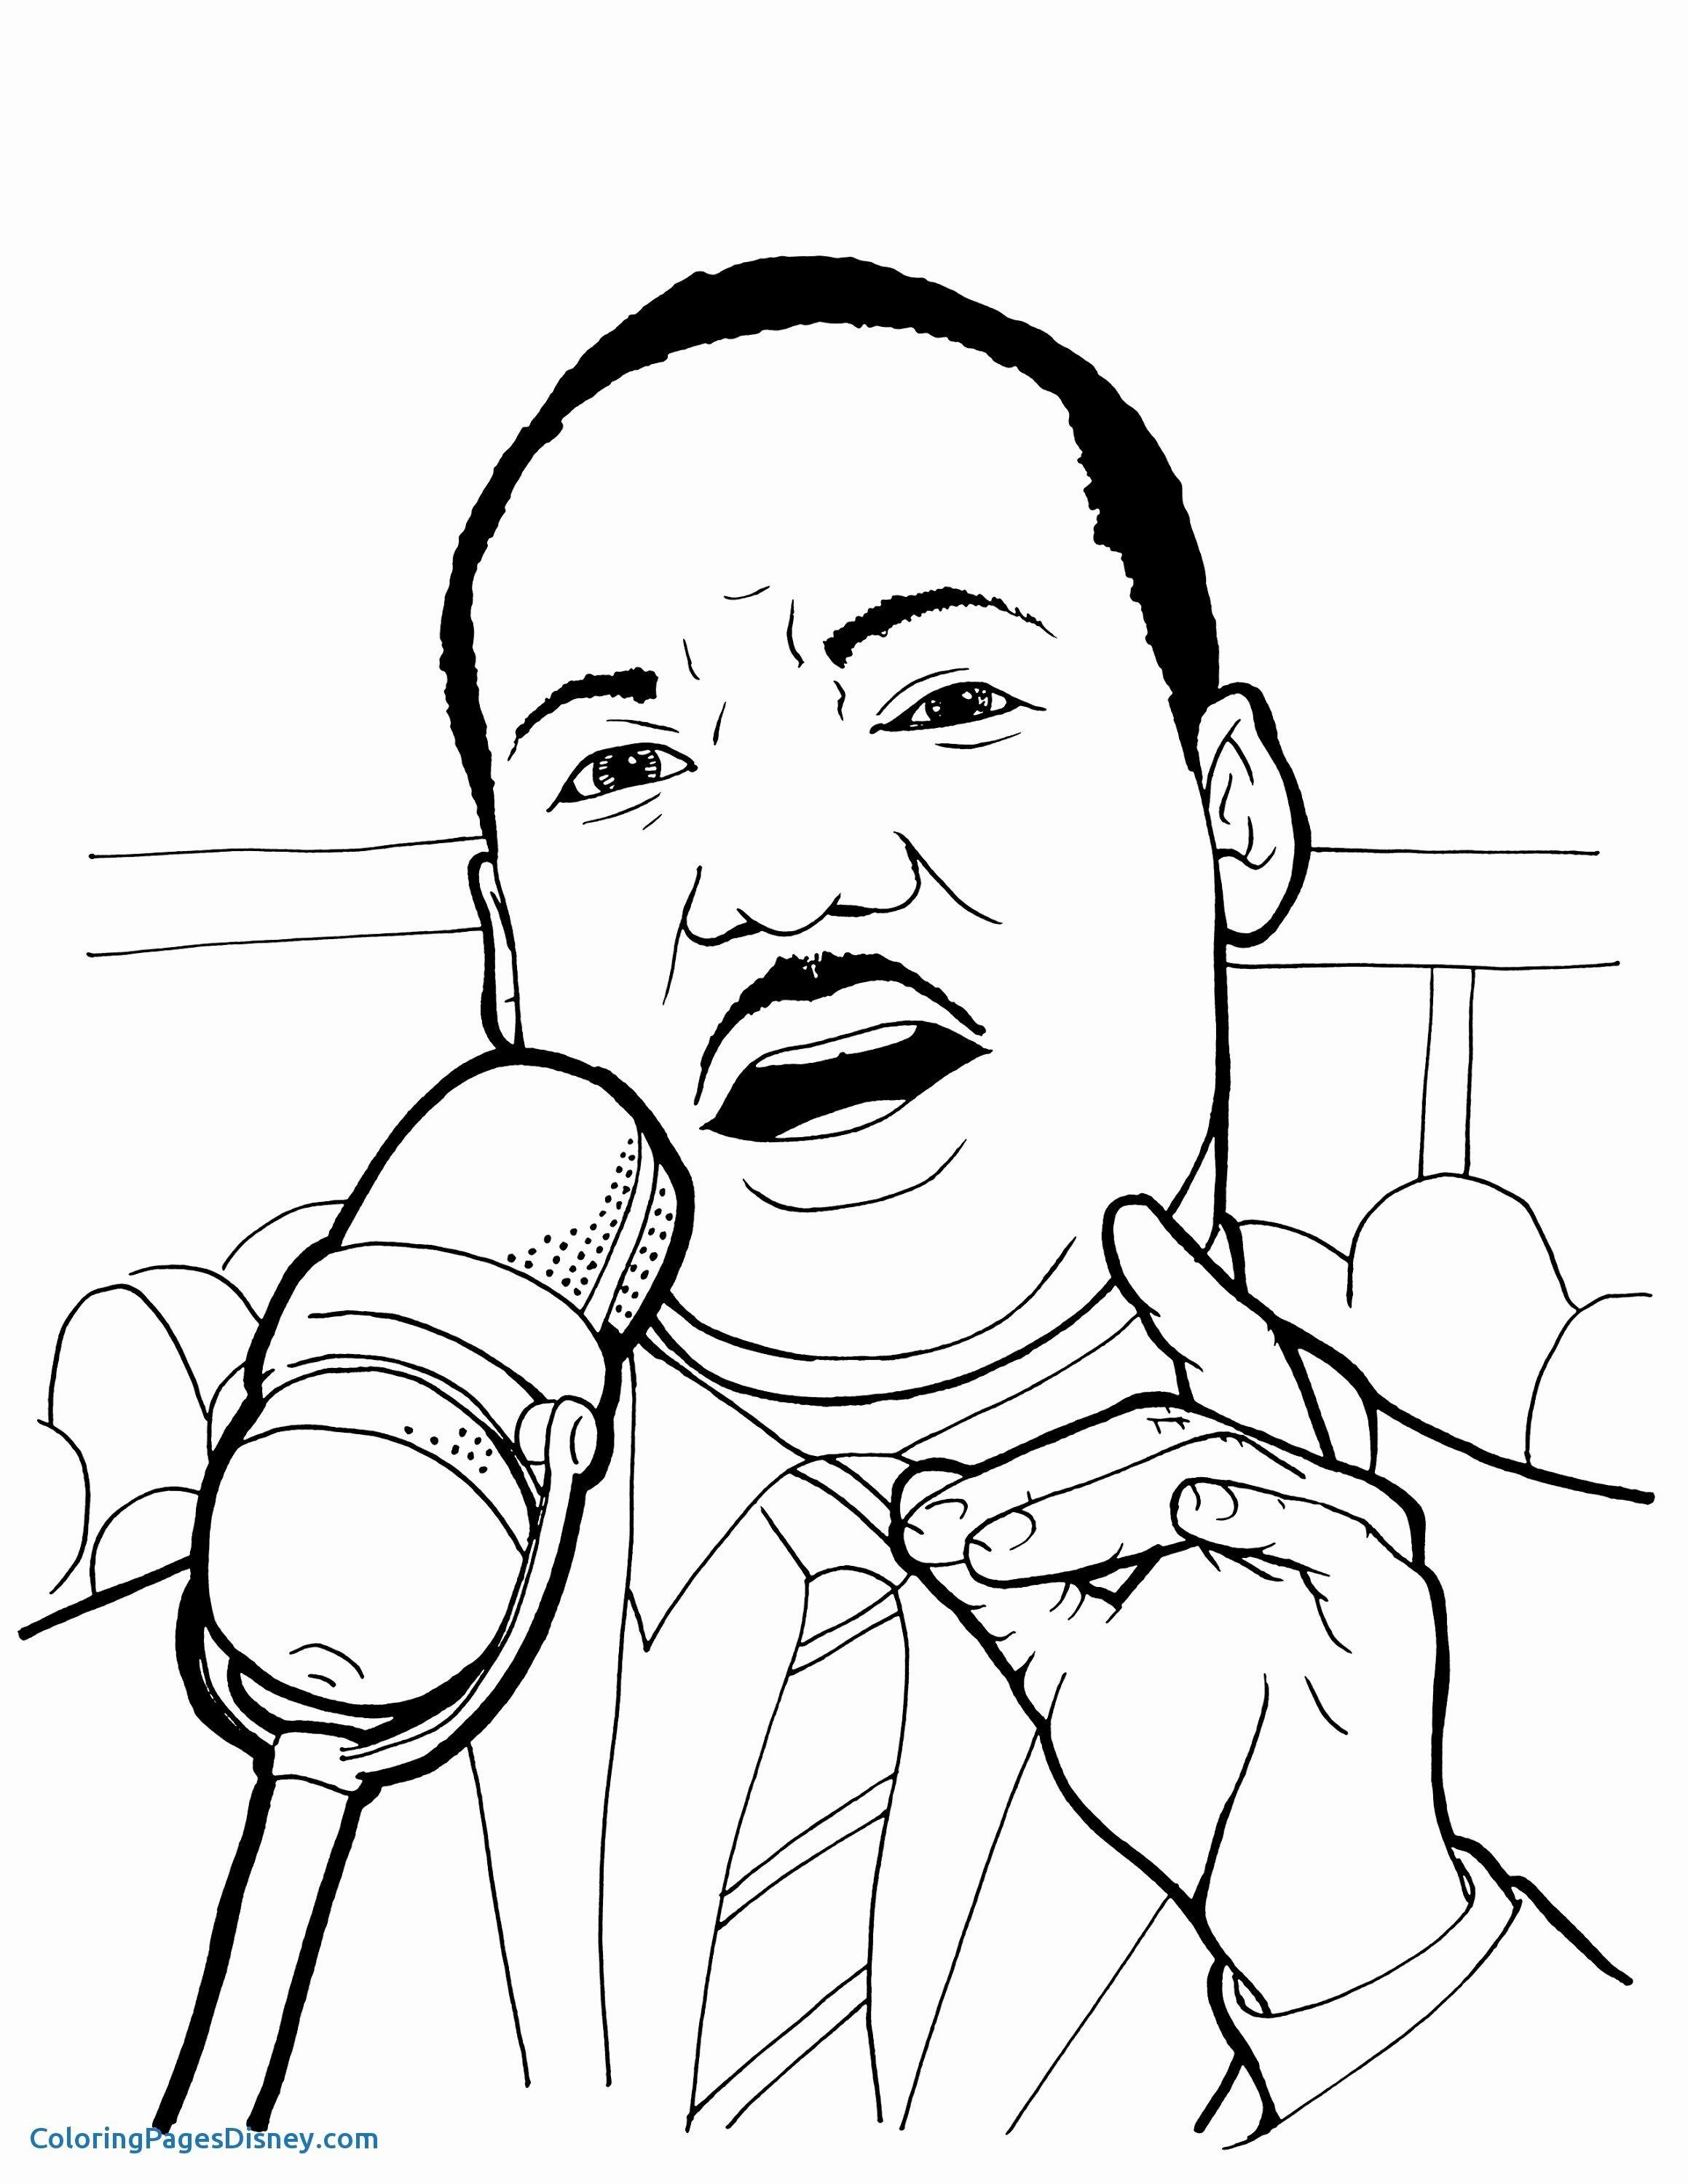 martin luther king jr coloring page i love reading coloring pages best of new dr martin luther martin luther jr coloring page king